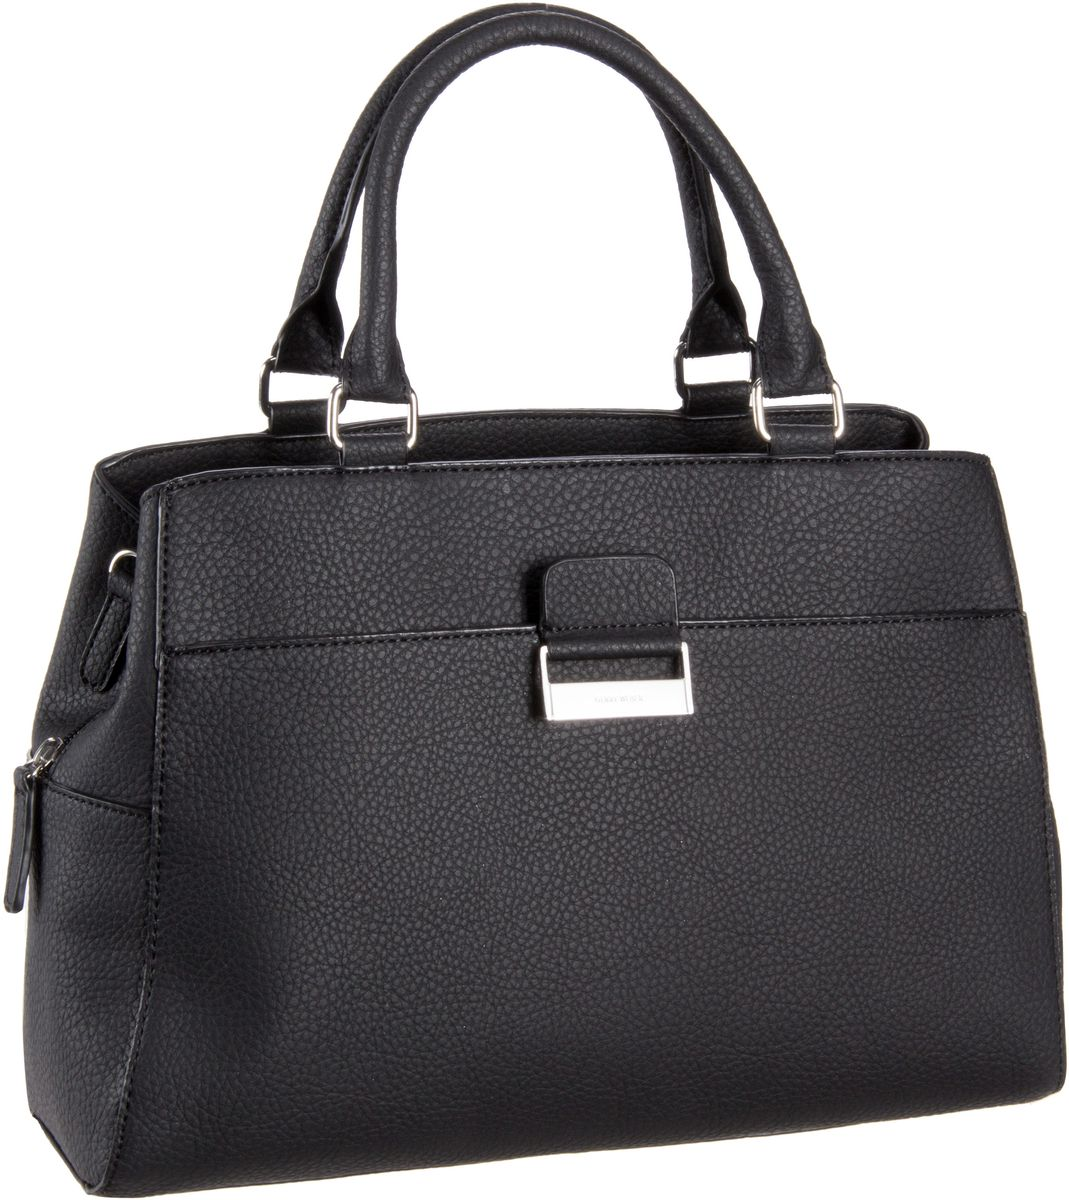 Gerry Weber Talk Different II Handbag Large Black Handtasche